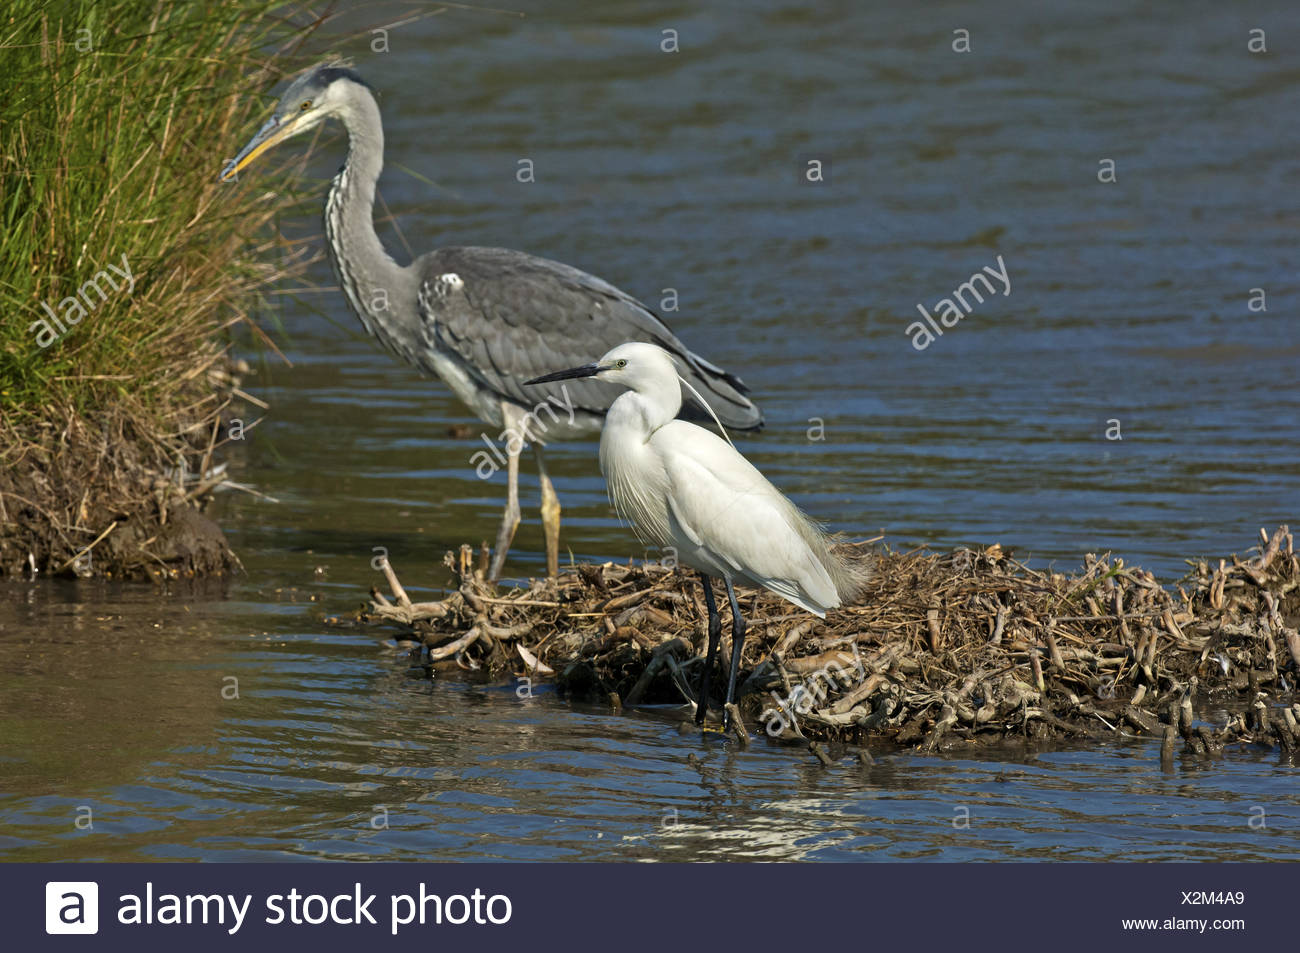 Comparison in size, Little Egret and Grey Heron - Stock Image